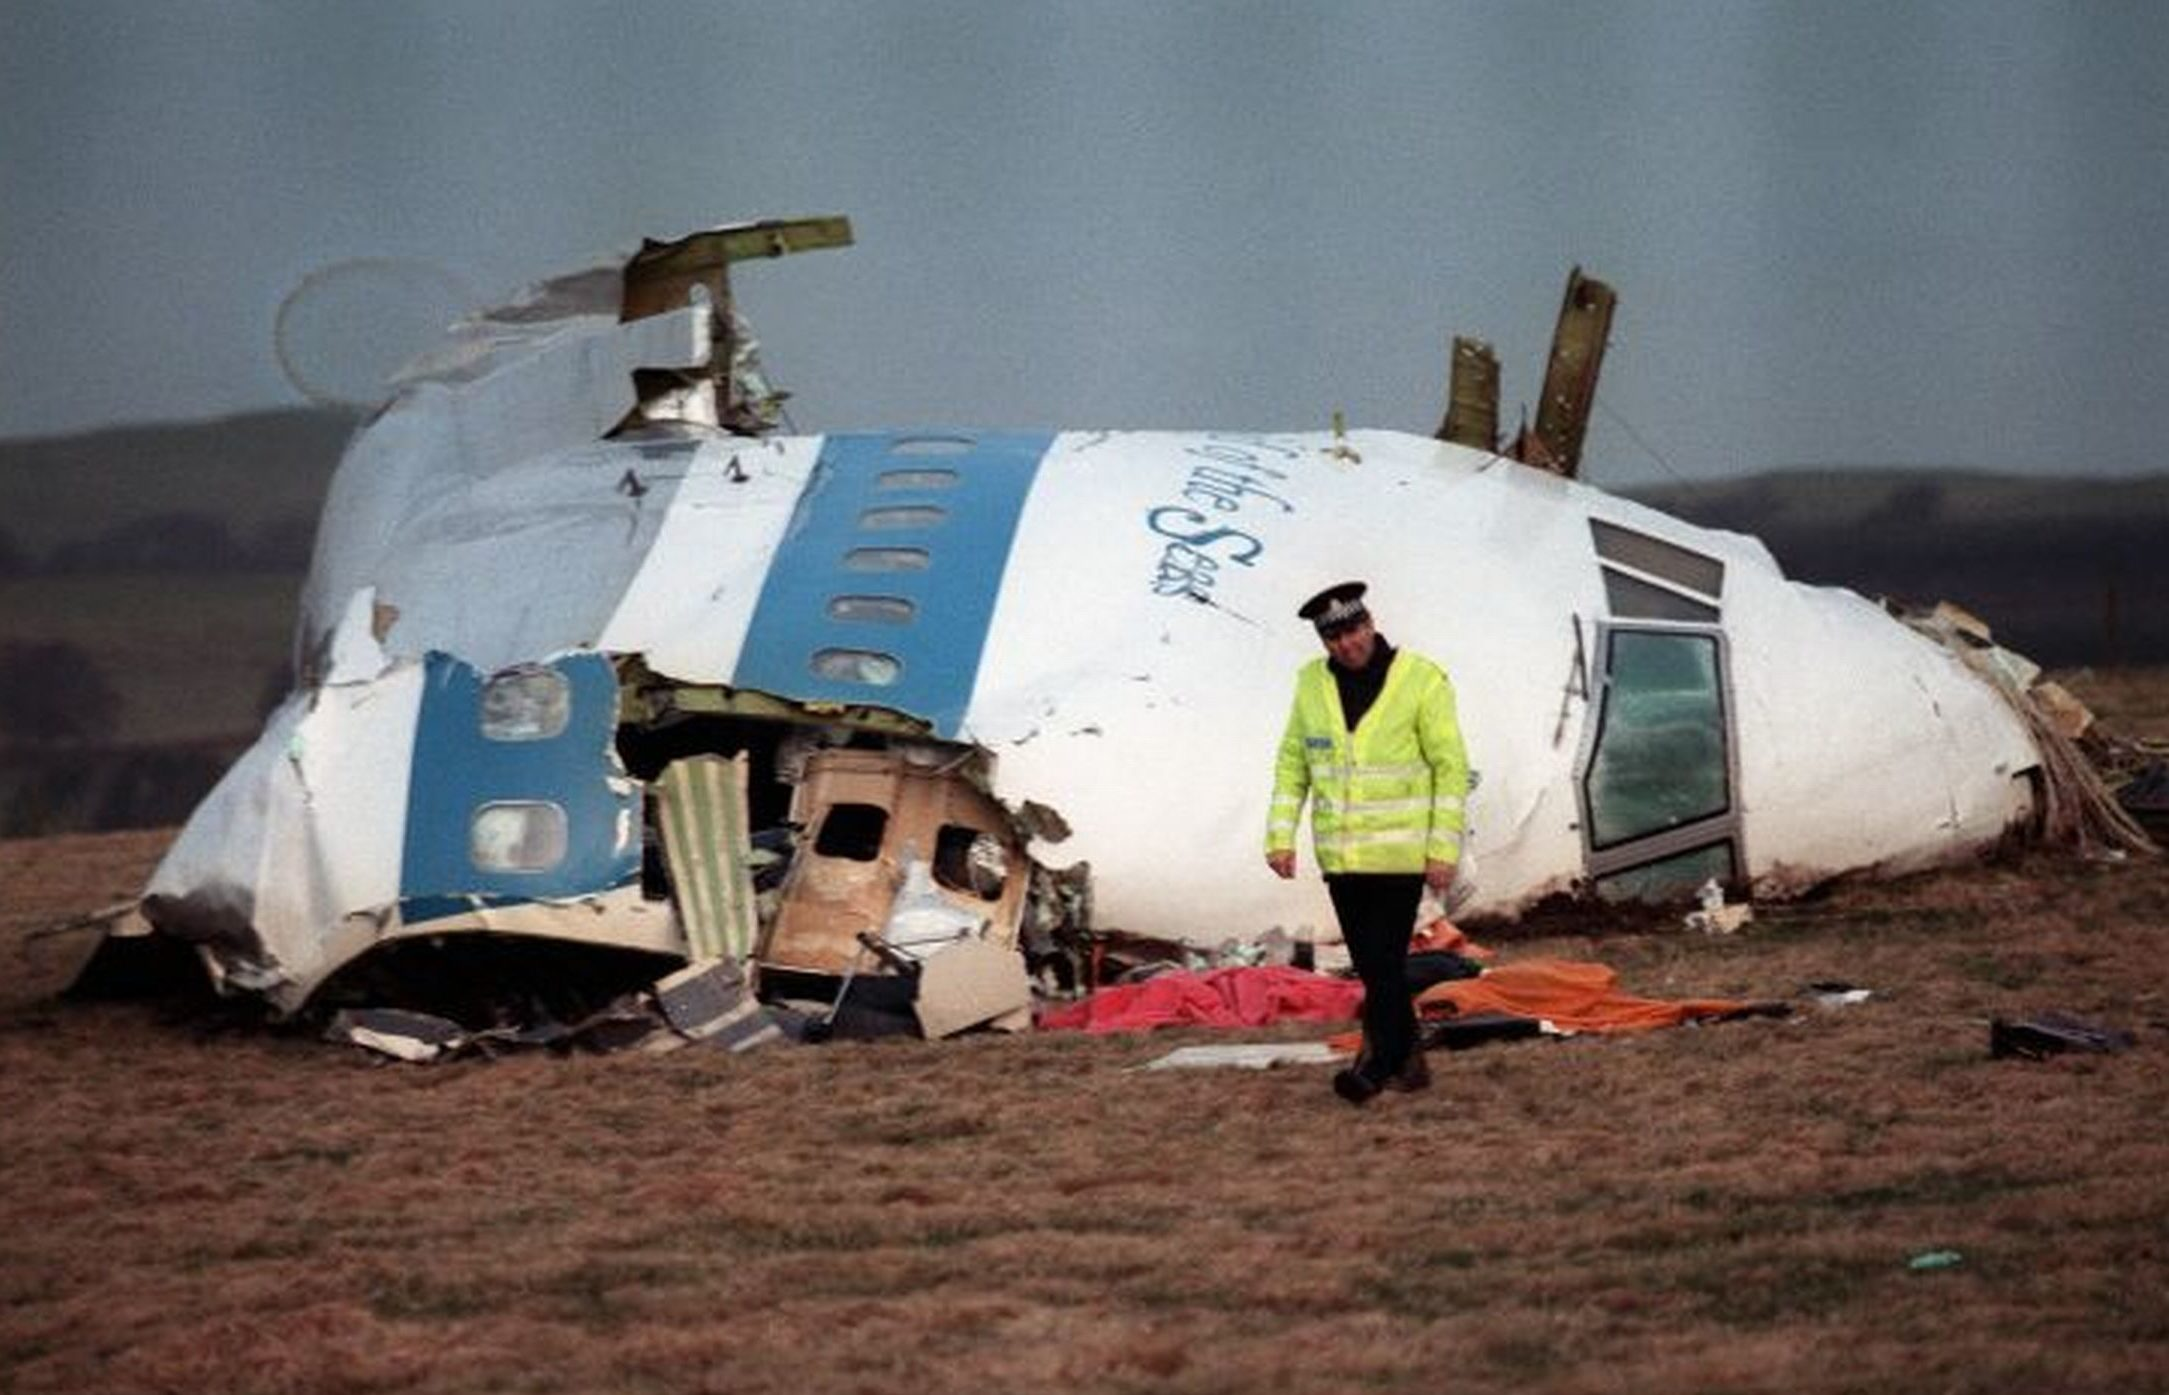 The Lockerbie disaster.